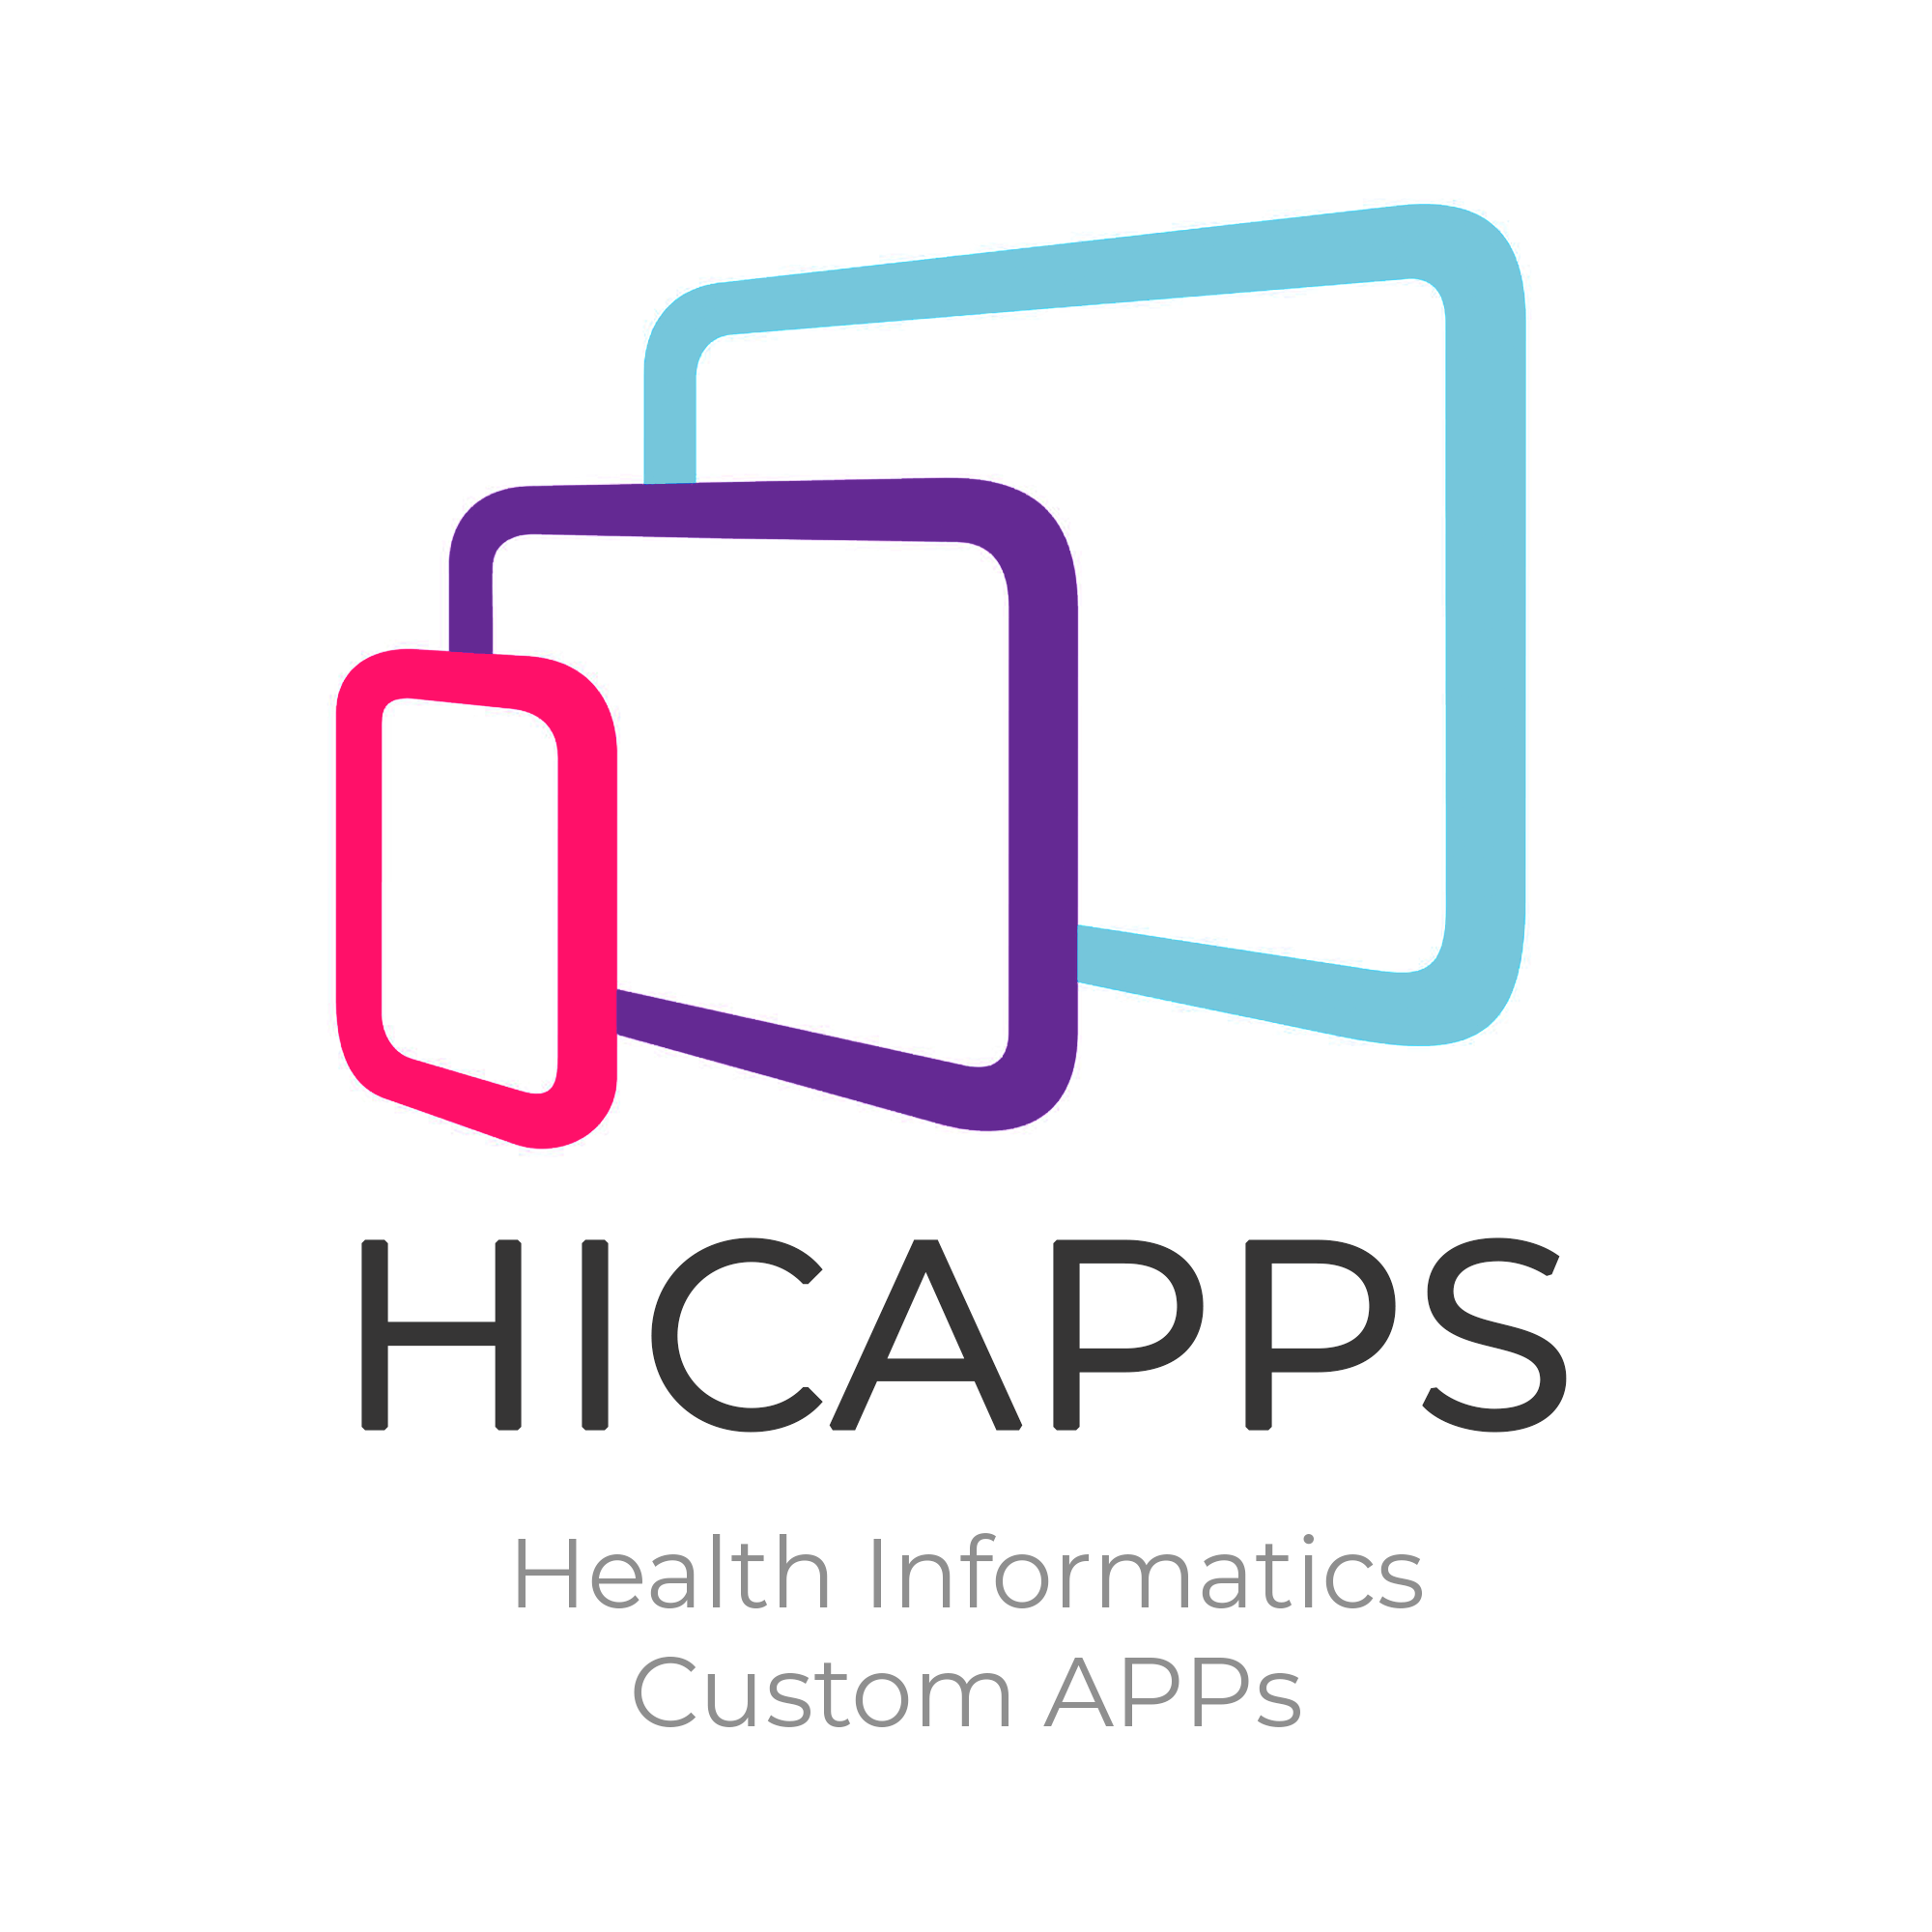 HICAPPS - Health Informatics Custom APPs